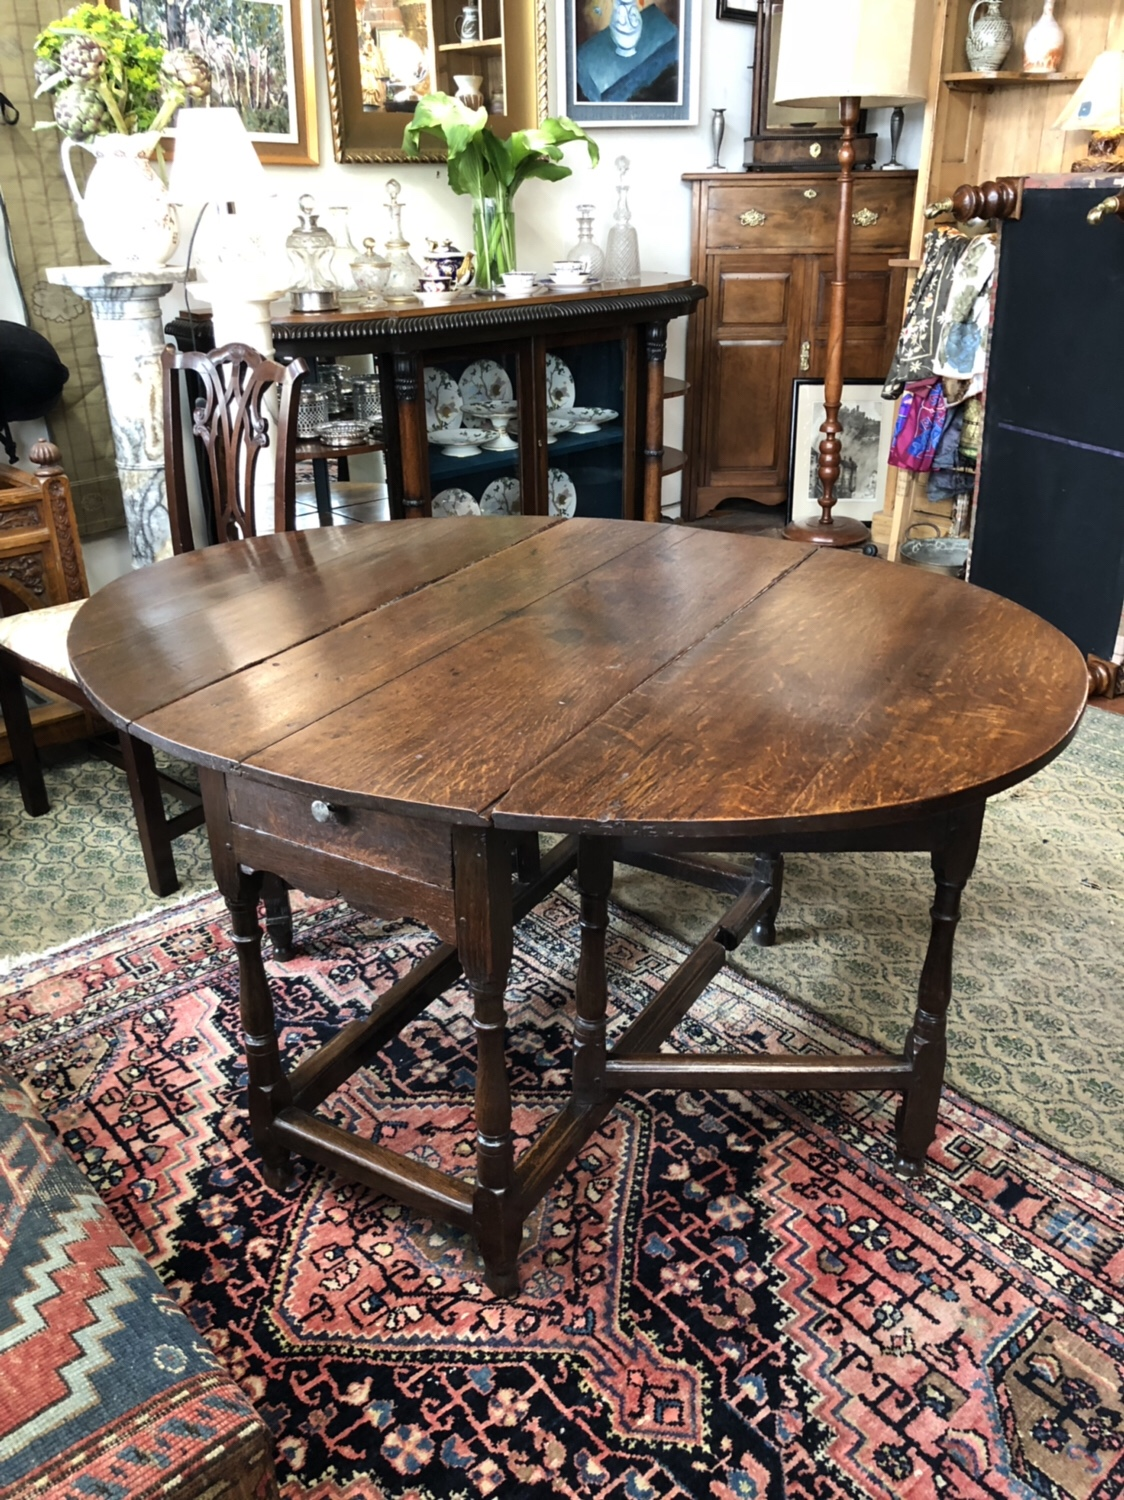 122. Oak Gate Leg Table